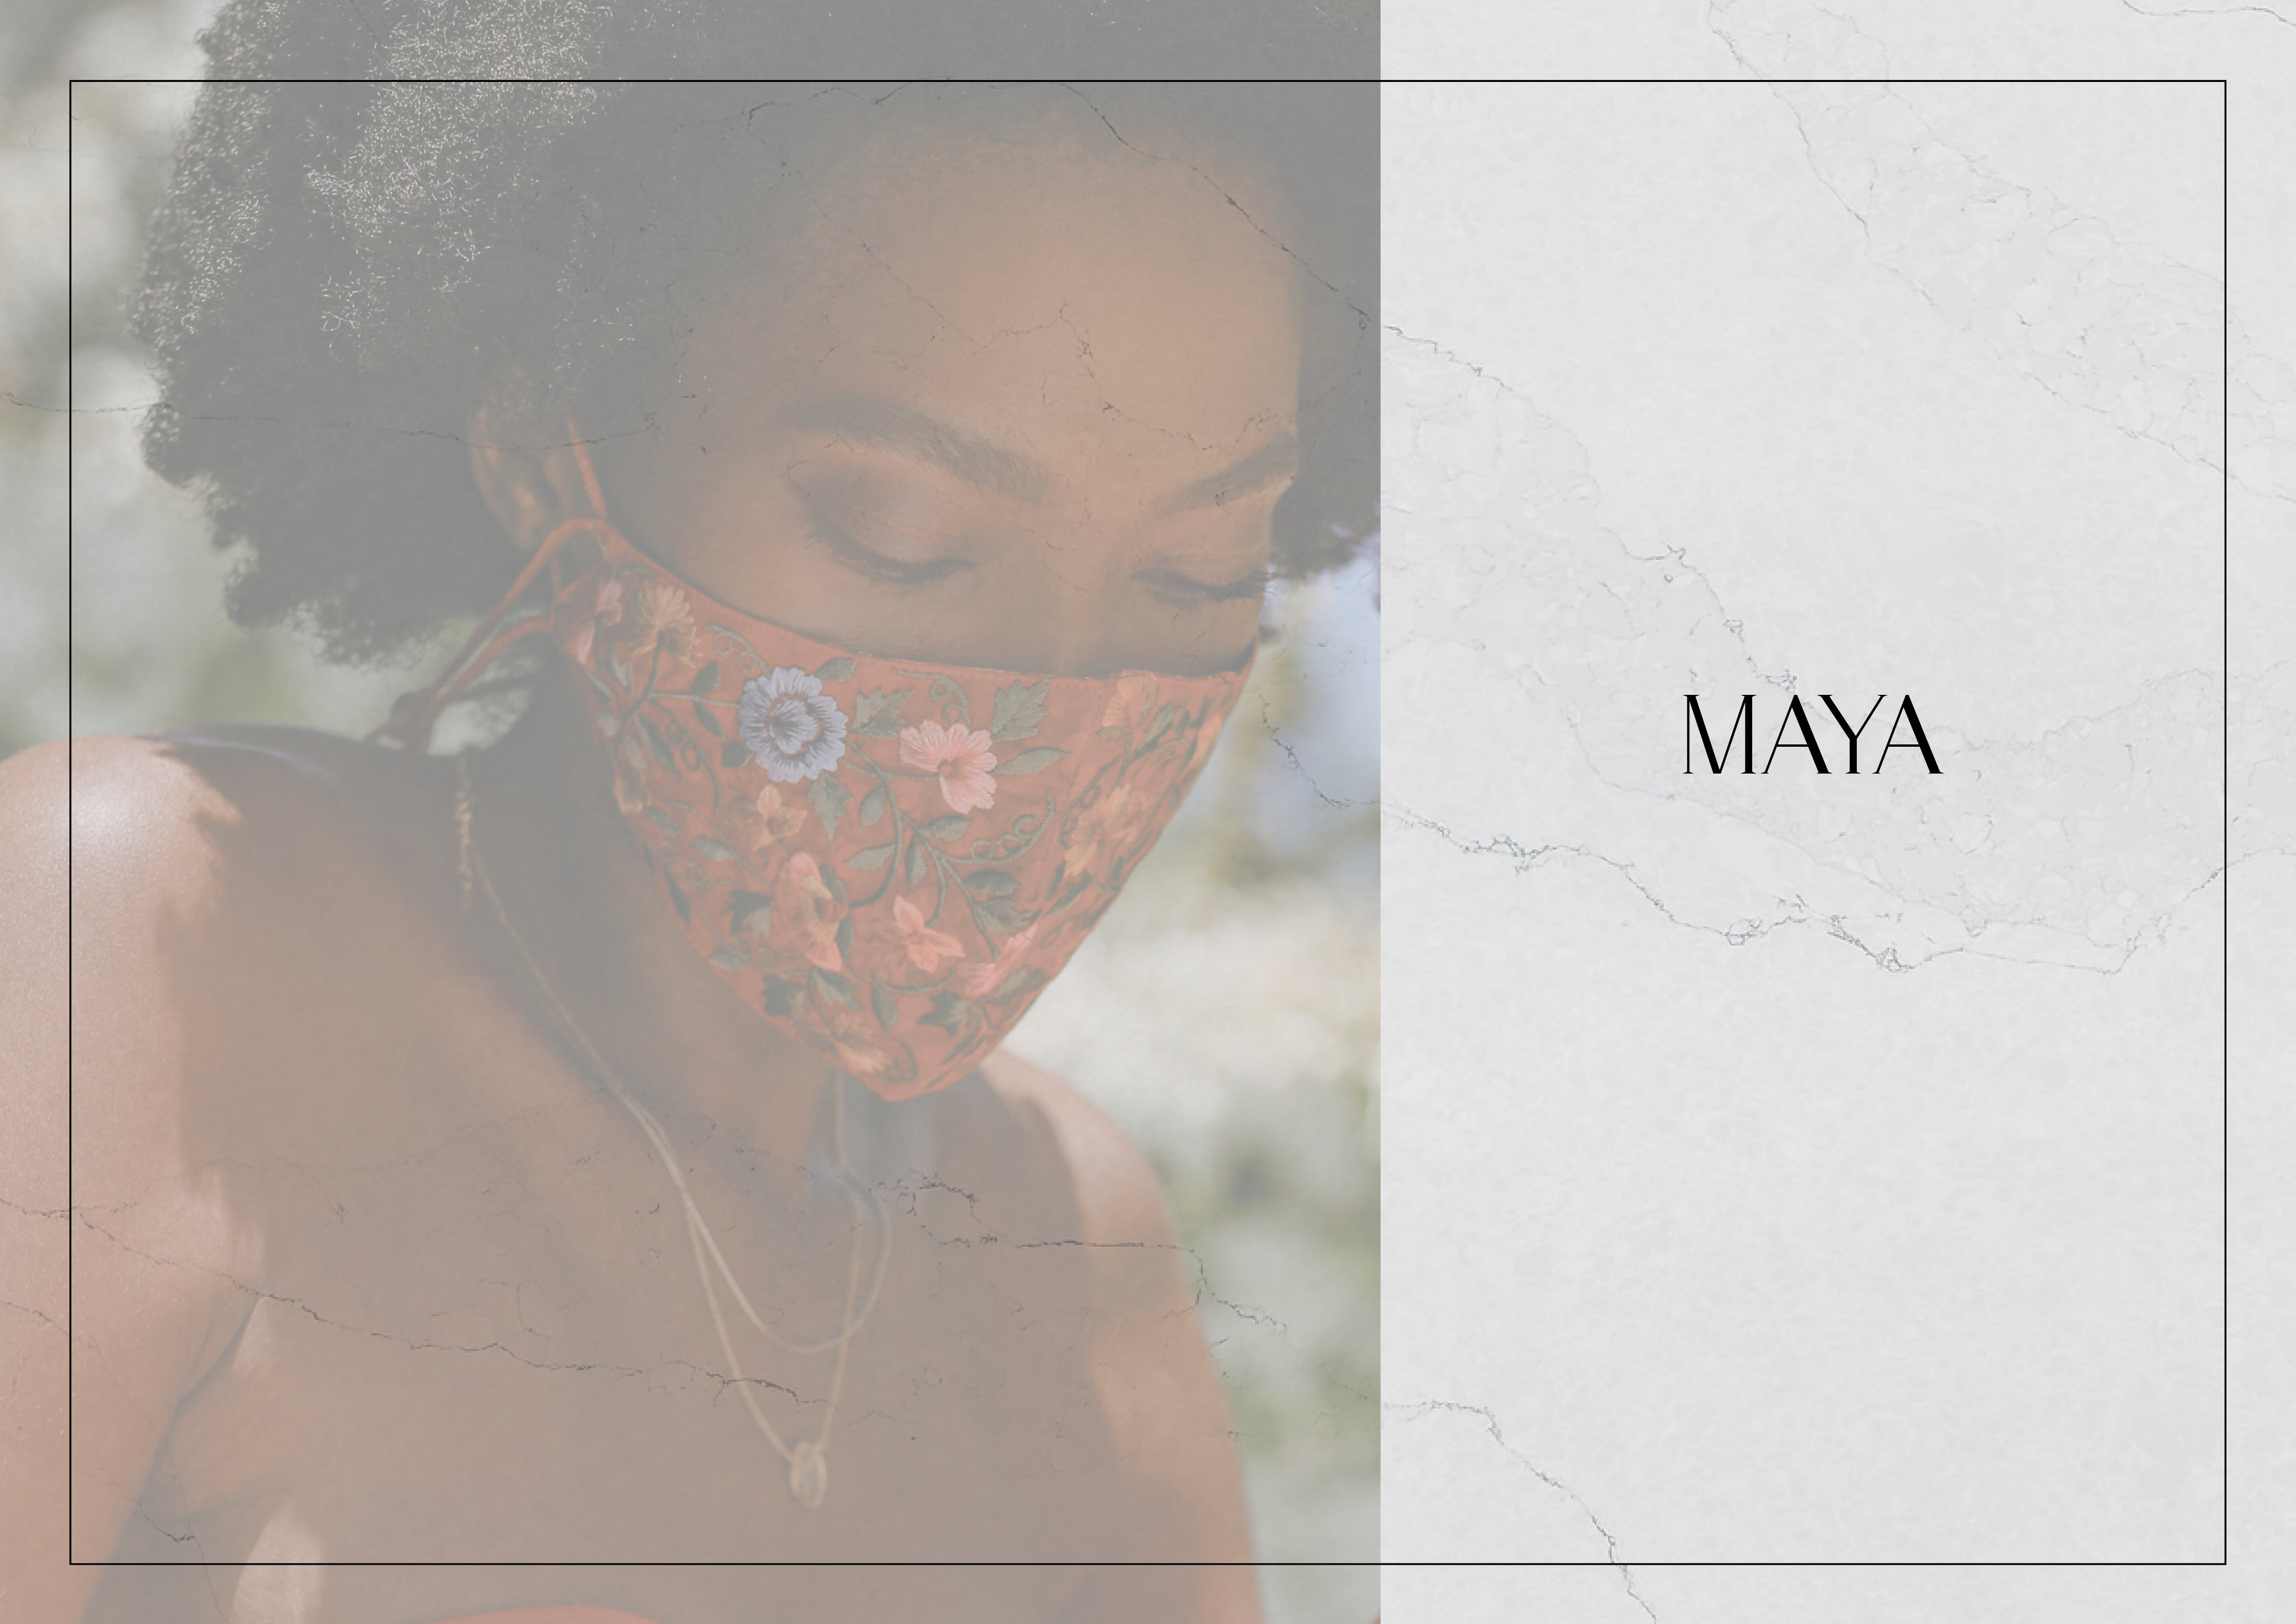 Handcrafted Fashionable Face Mask/Covering by Namaskaya